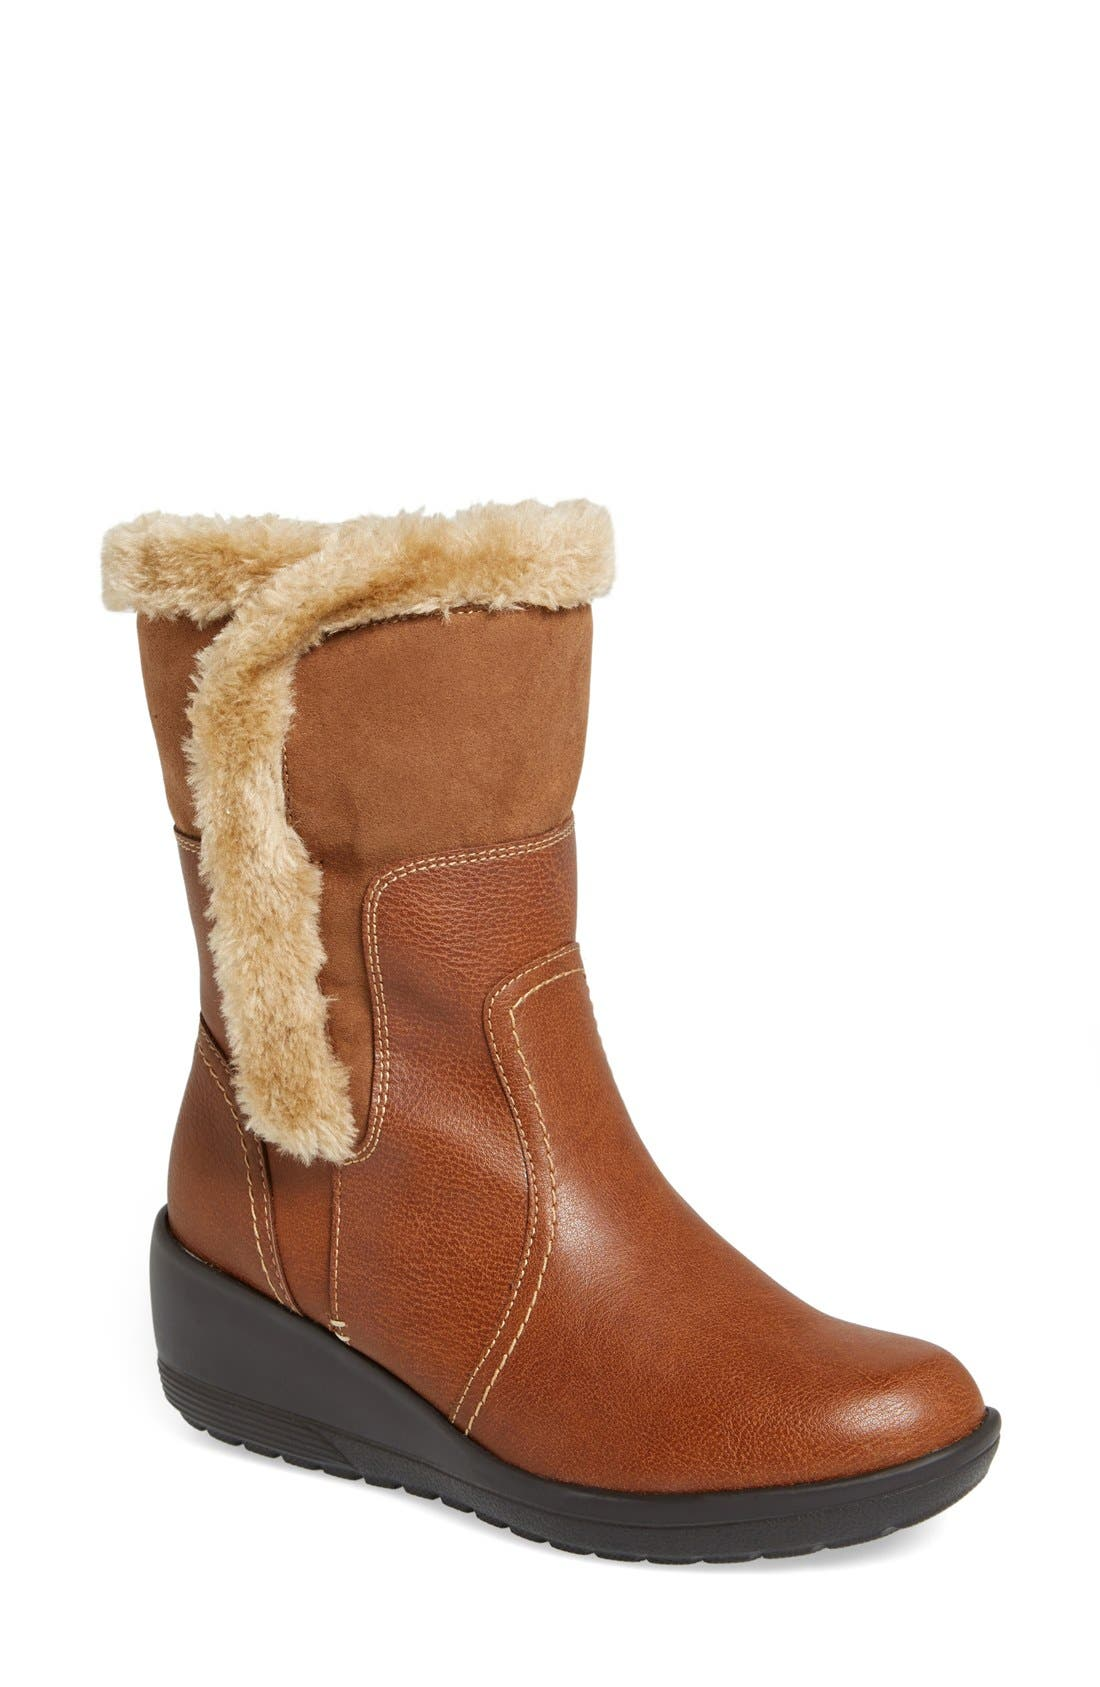 softspots corby waterproof wedge boot nordstrom